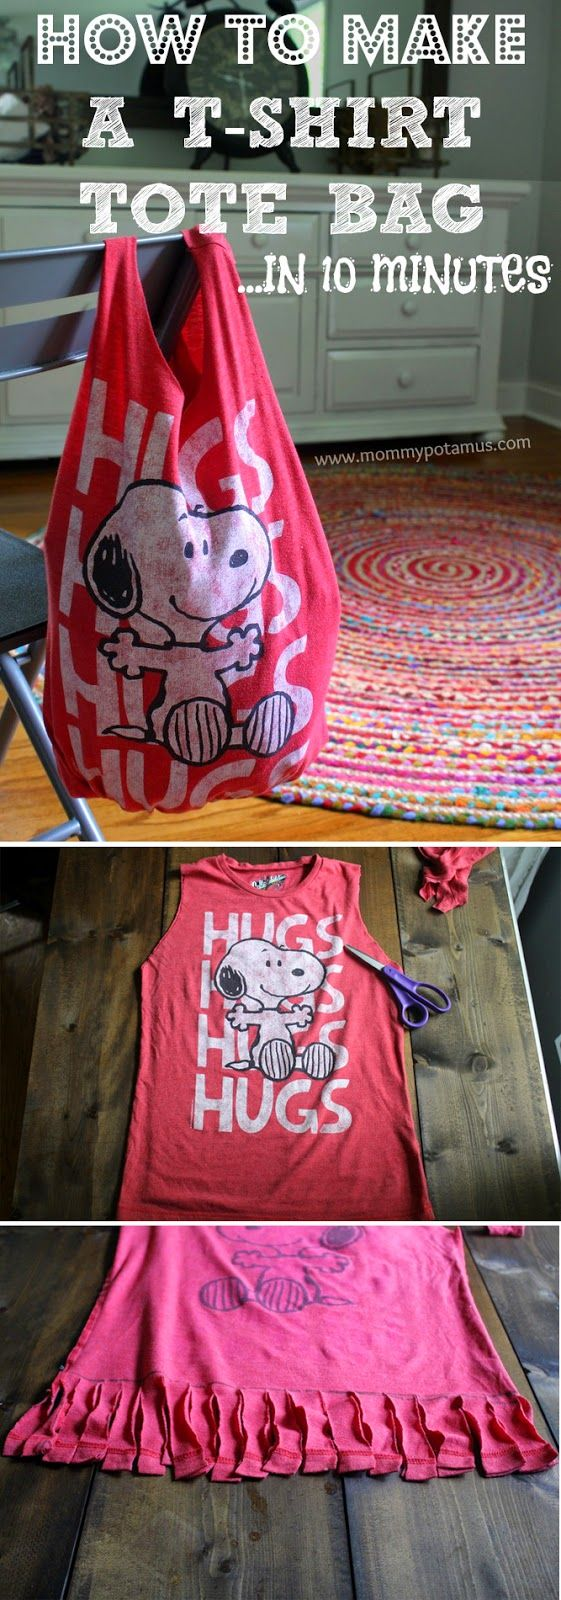 Tote bags, DIY tutorial and Totes on Pinterest